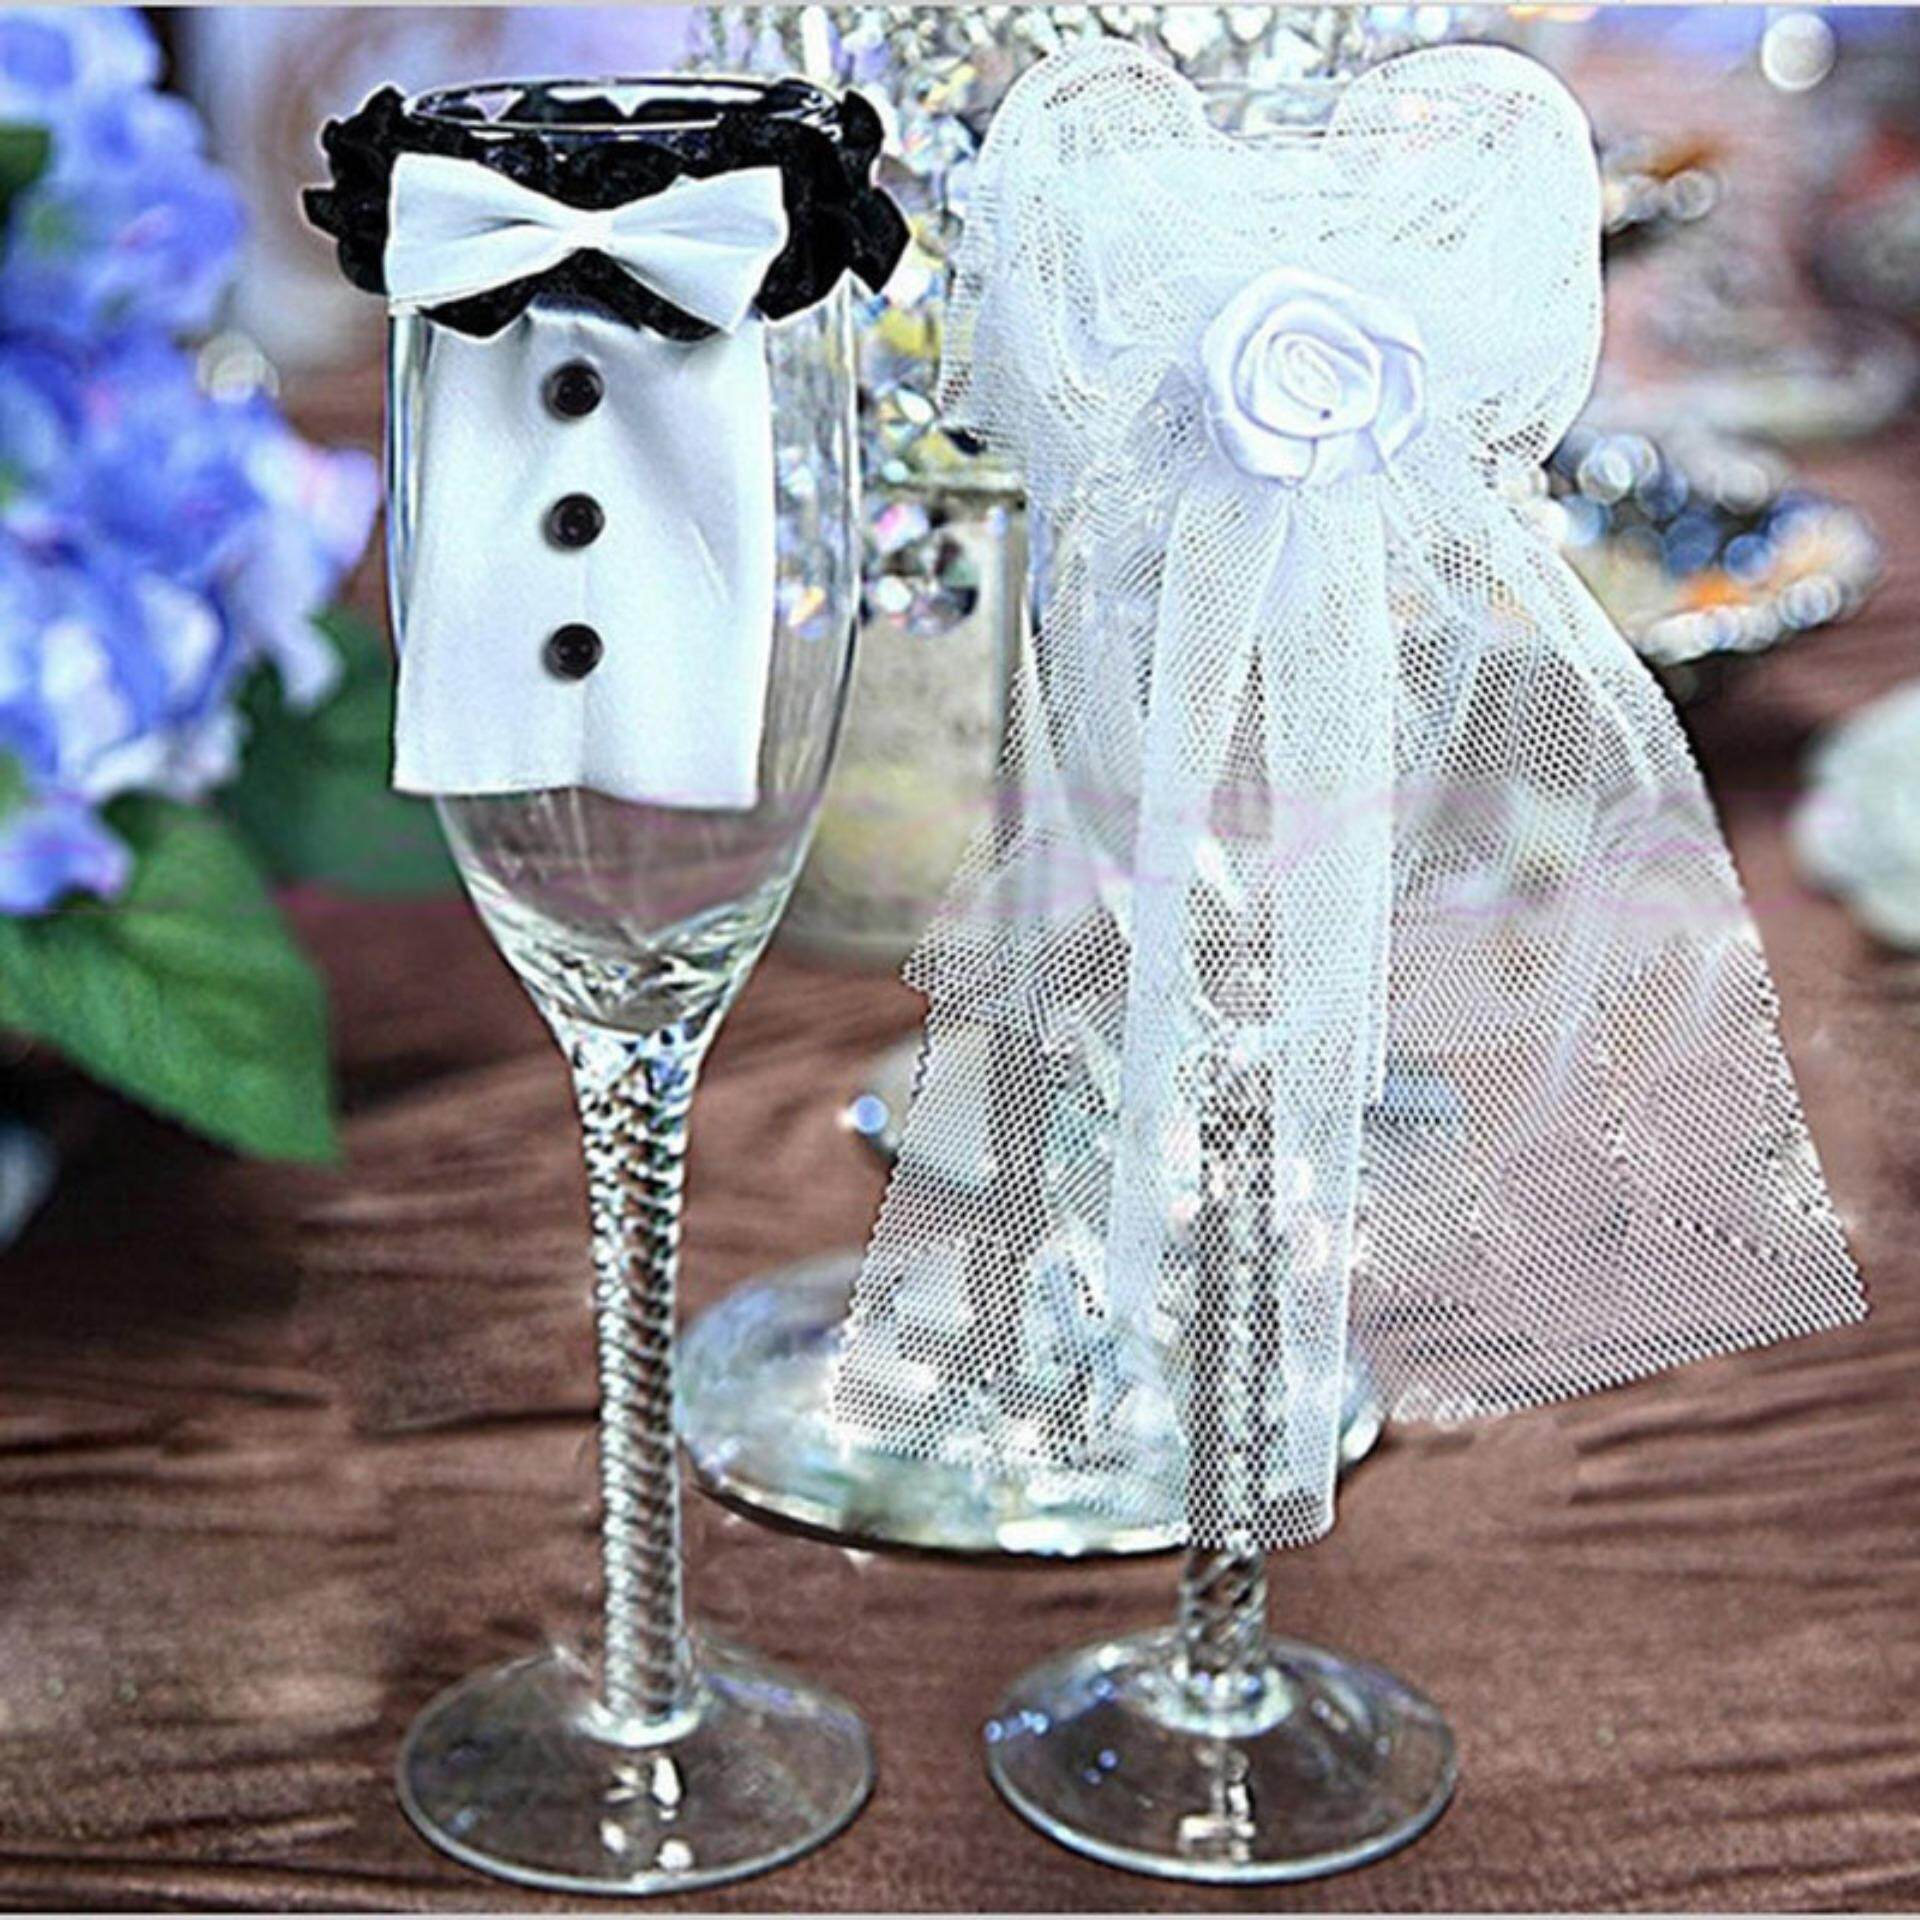 Couple Wedding Party Wine Glass Decor Bride Groom Tux Bridal Veil Toast Gift By Dragon Store.